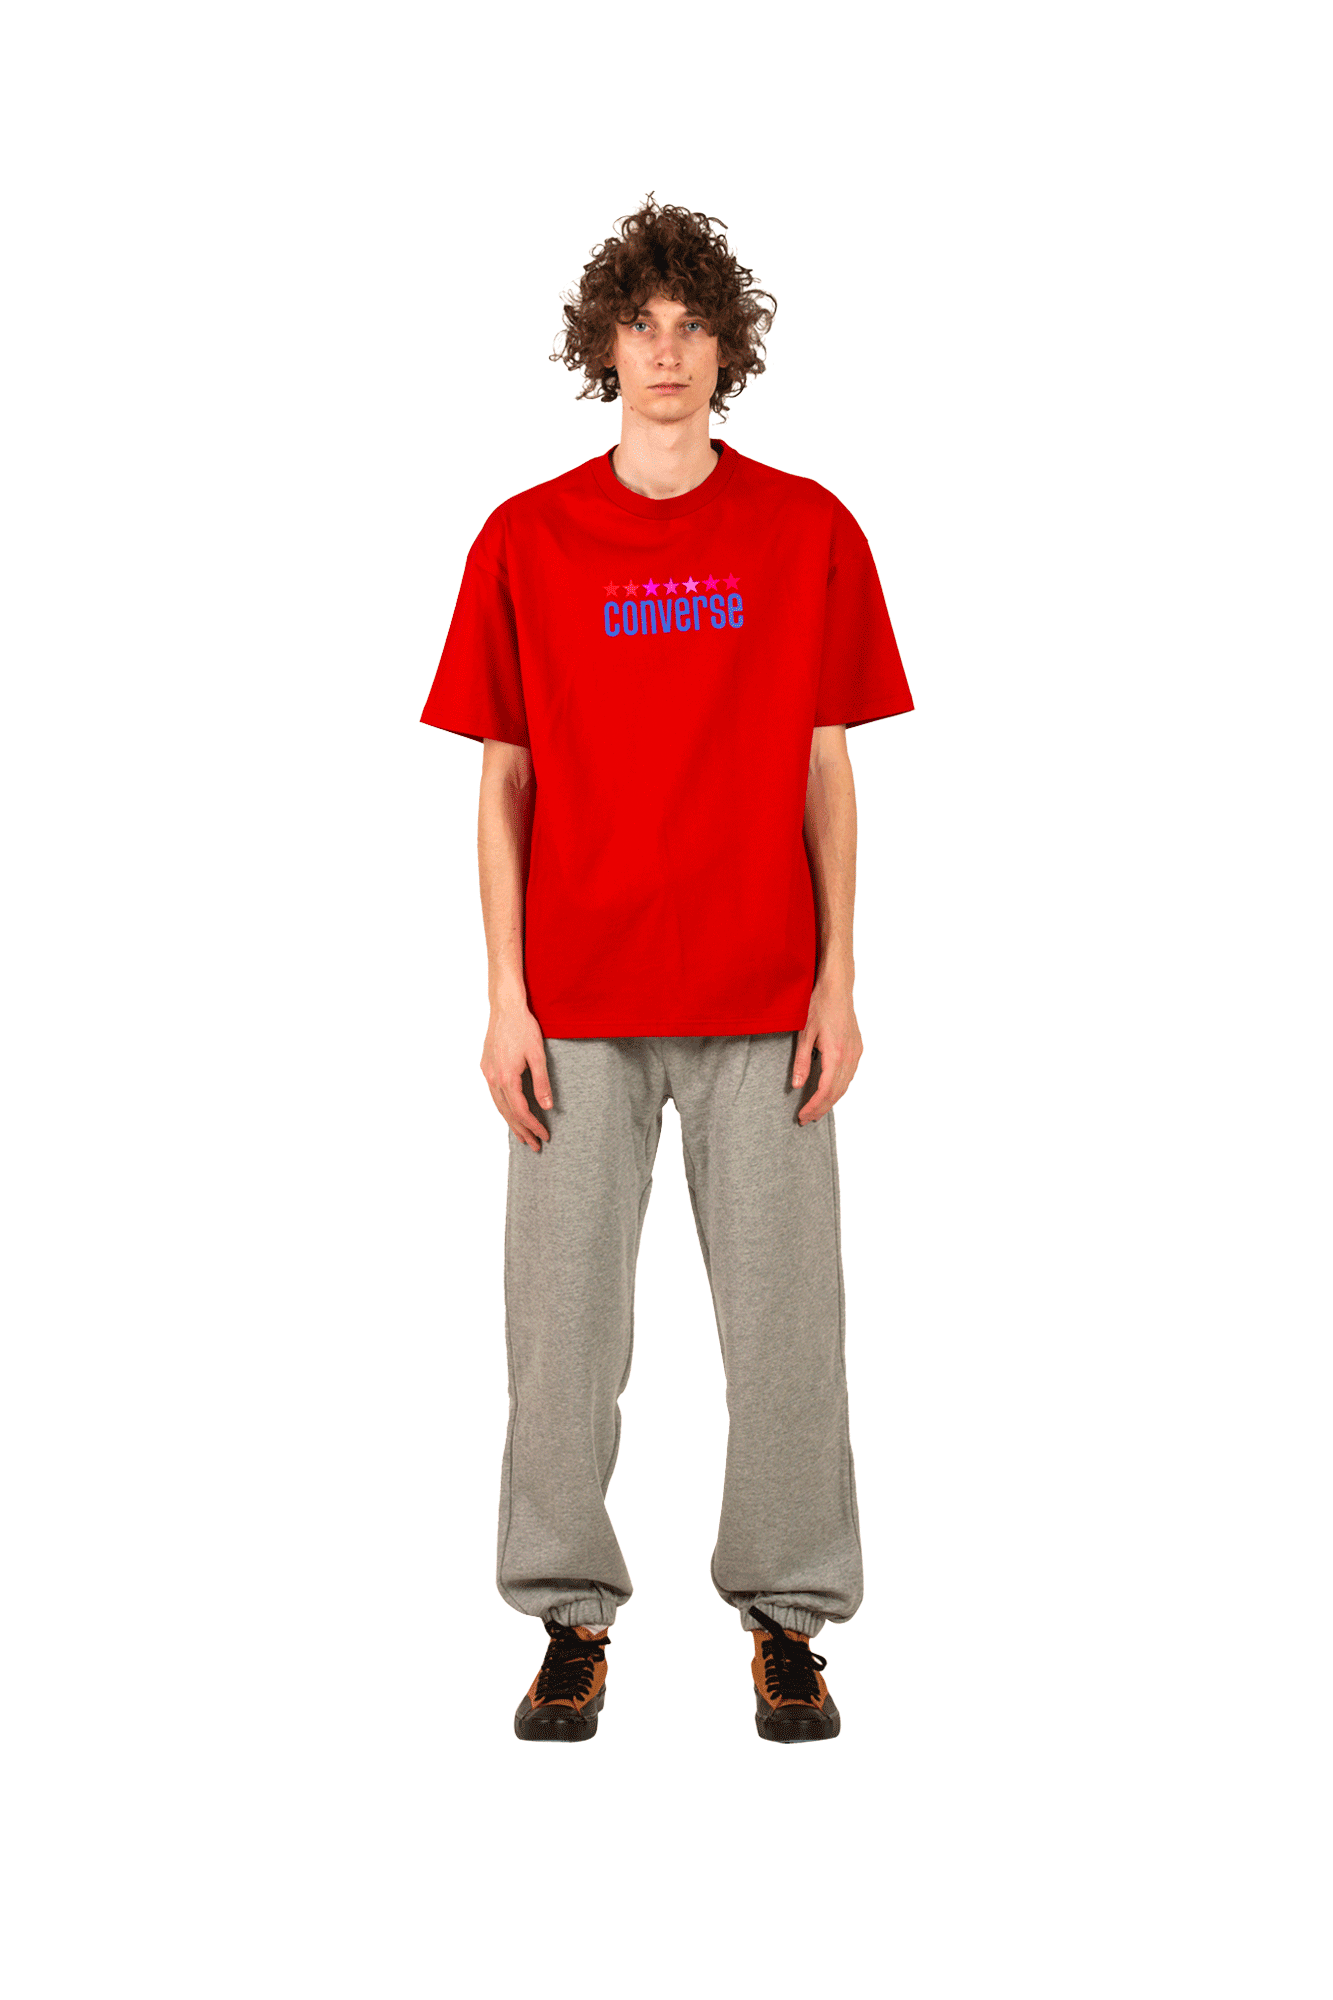 Converse T-Shirts VNTG WRDMRK Tee X ASAP NAST Red 10017743#A02#603#M - One Block Down